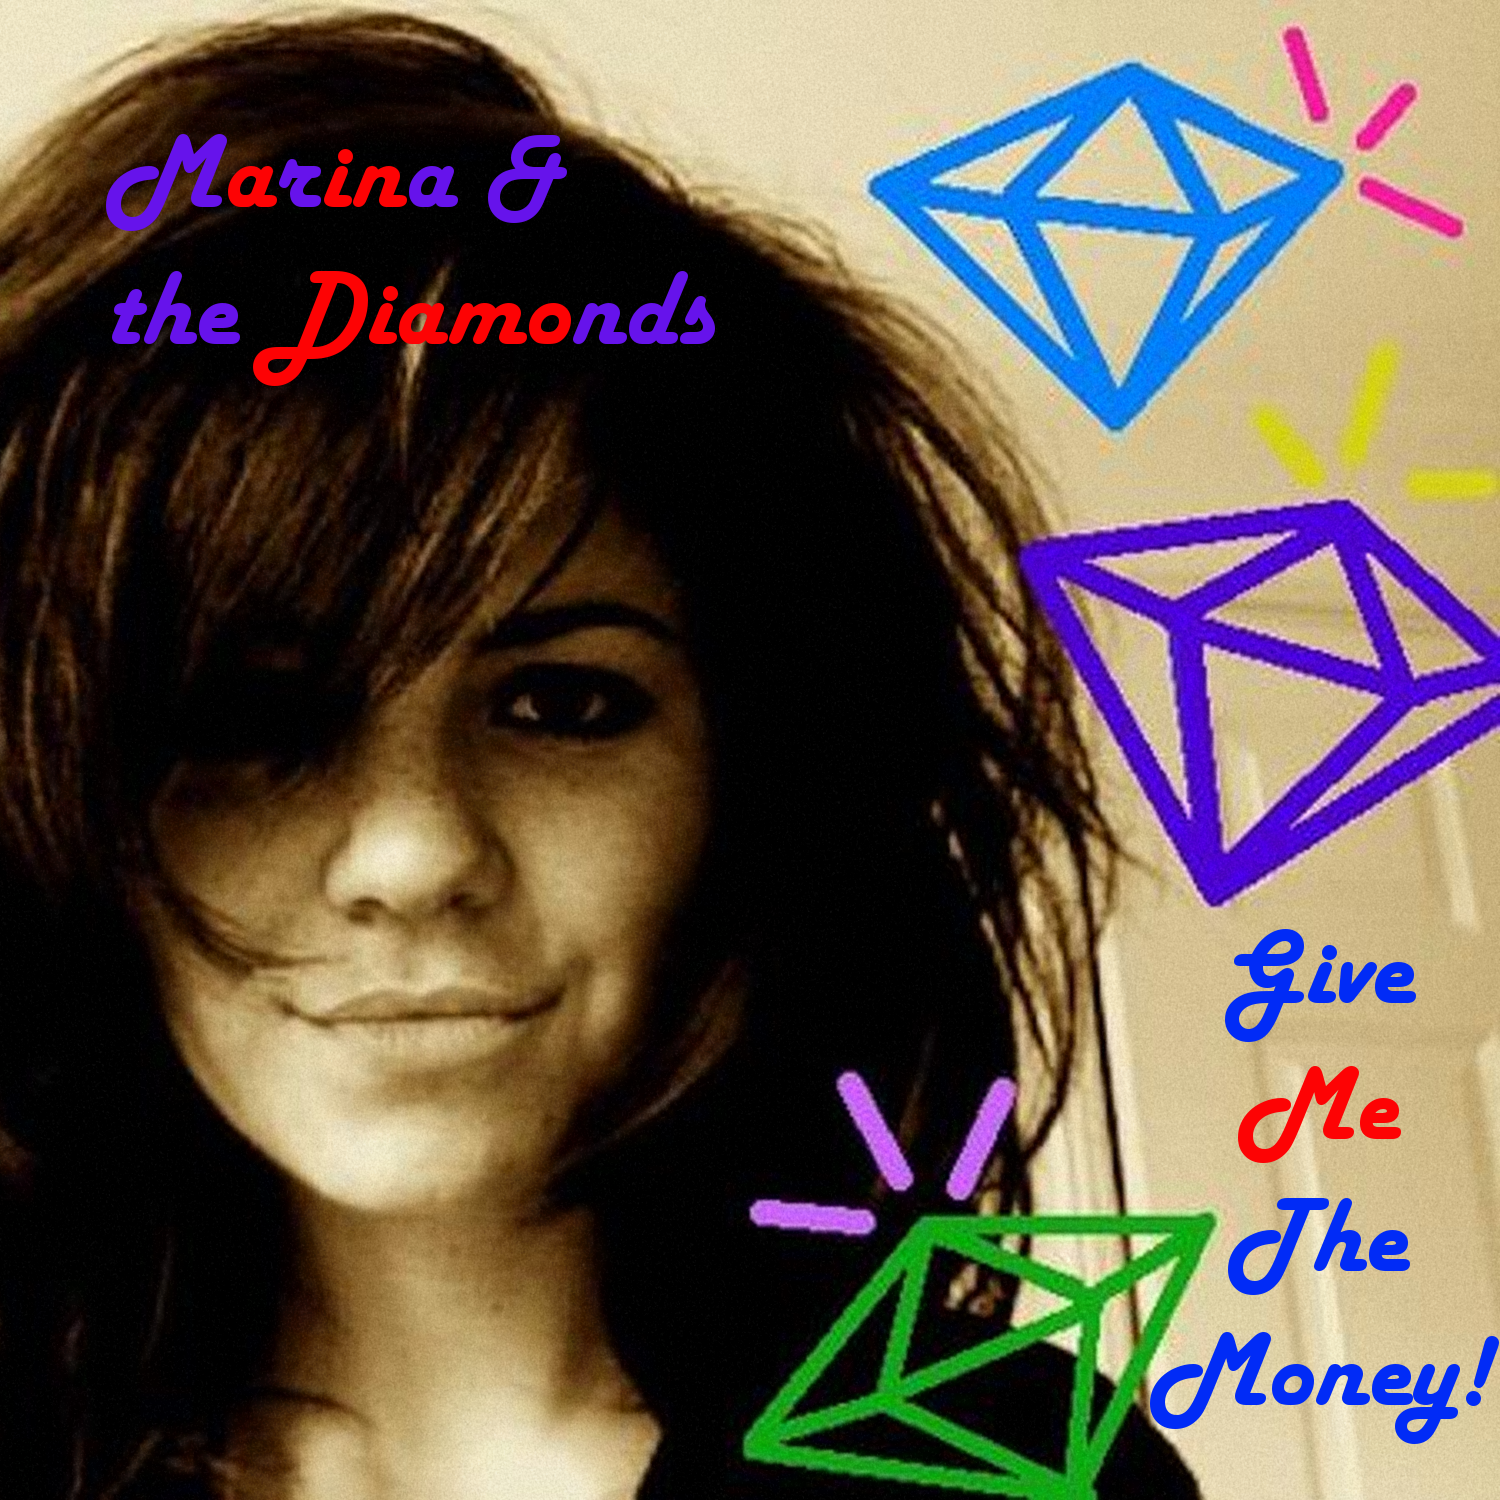 File:Give Me The Money artwork.png